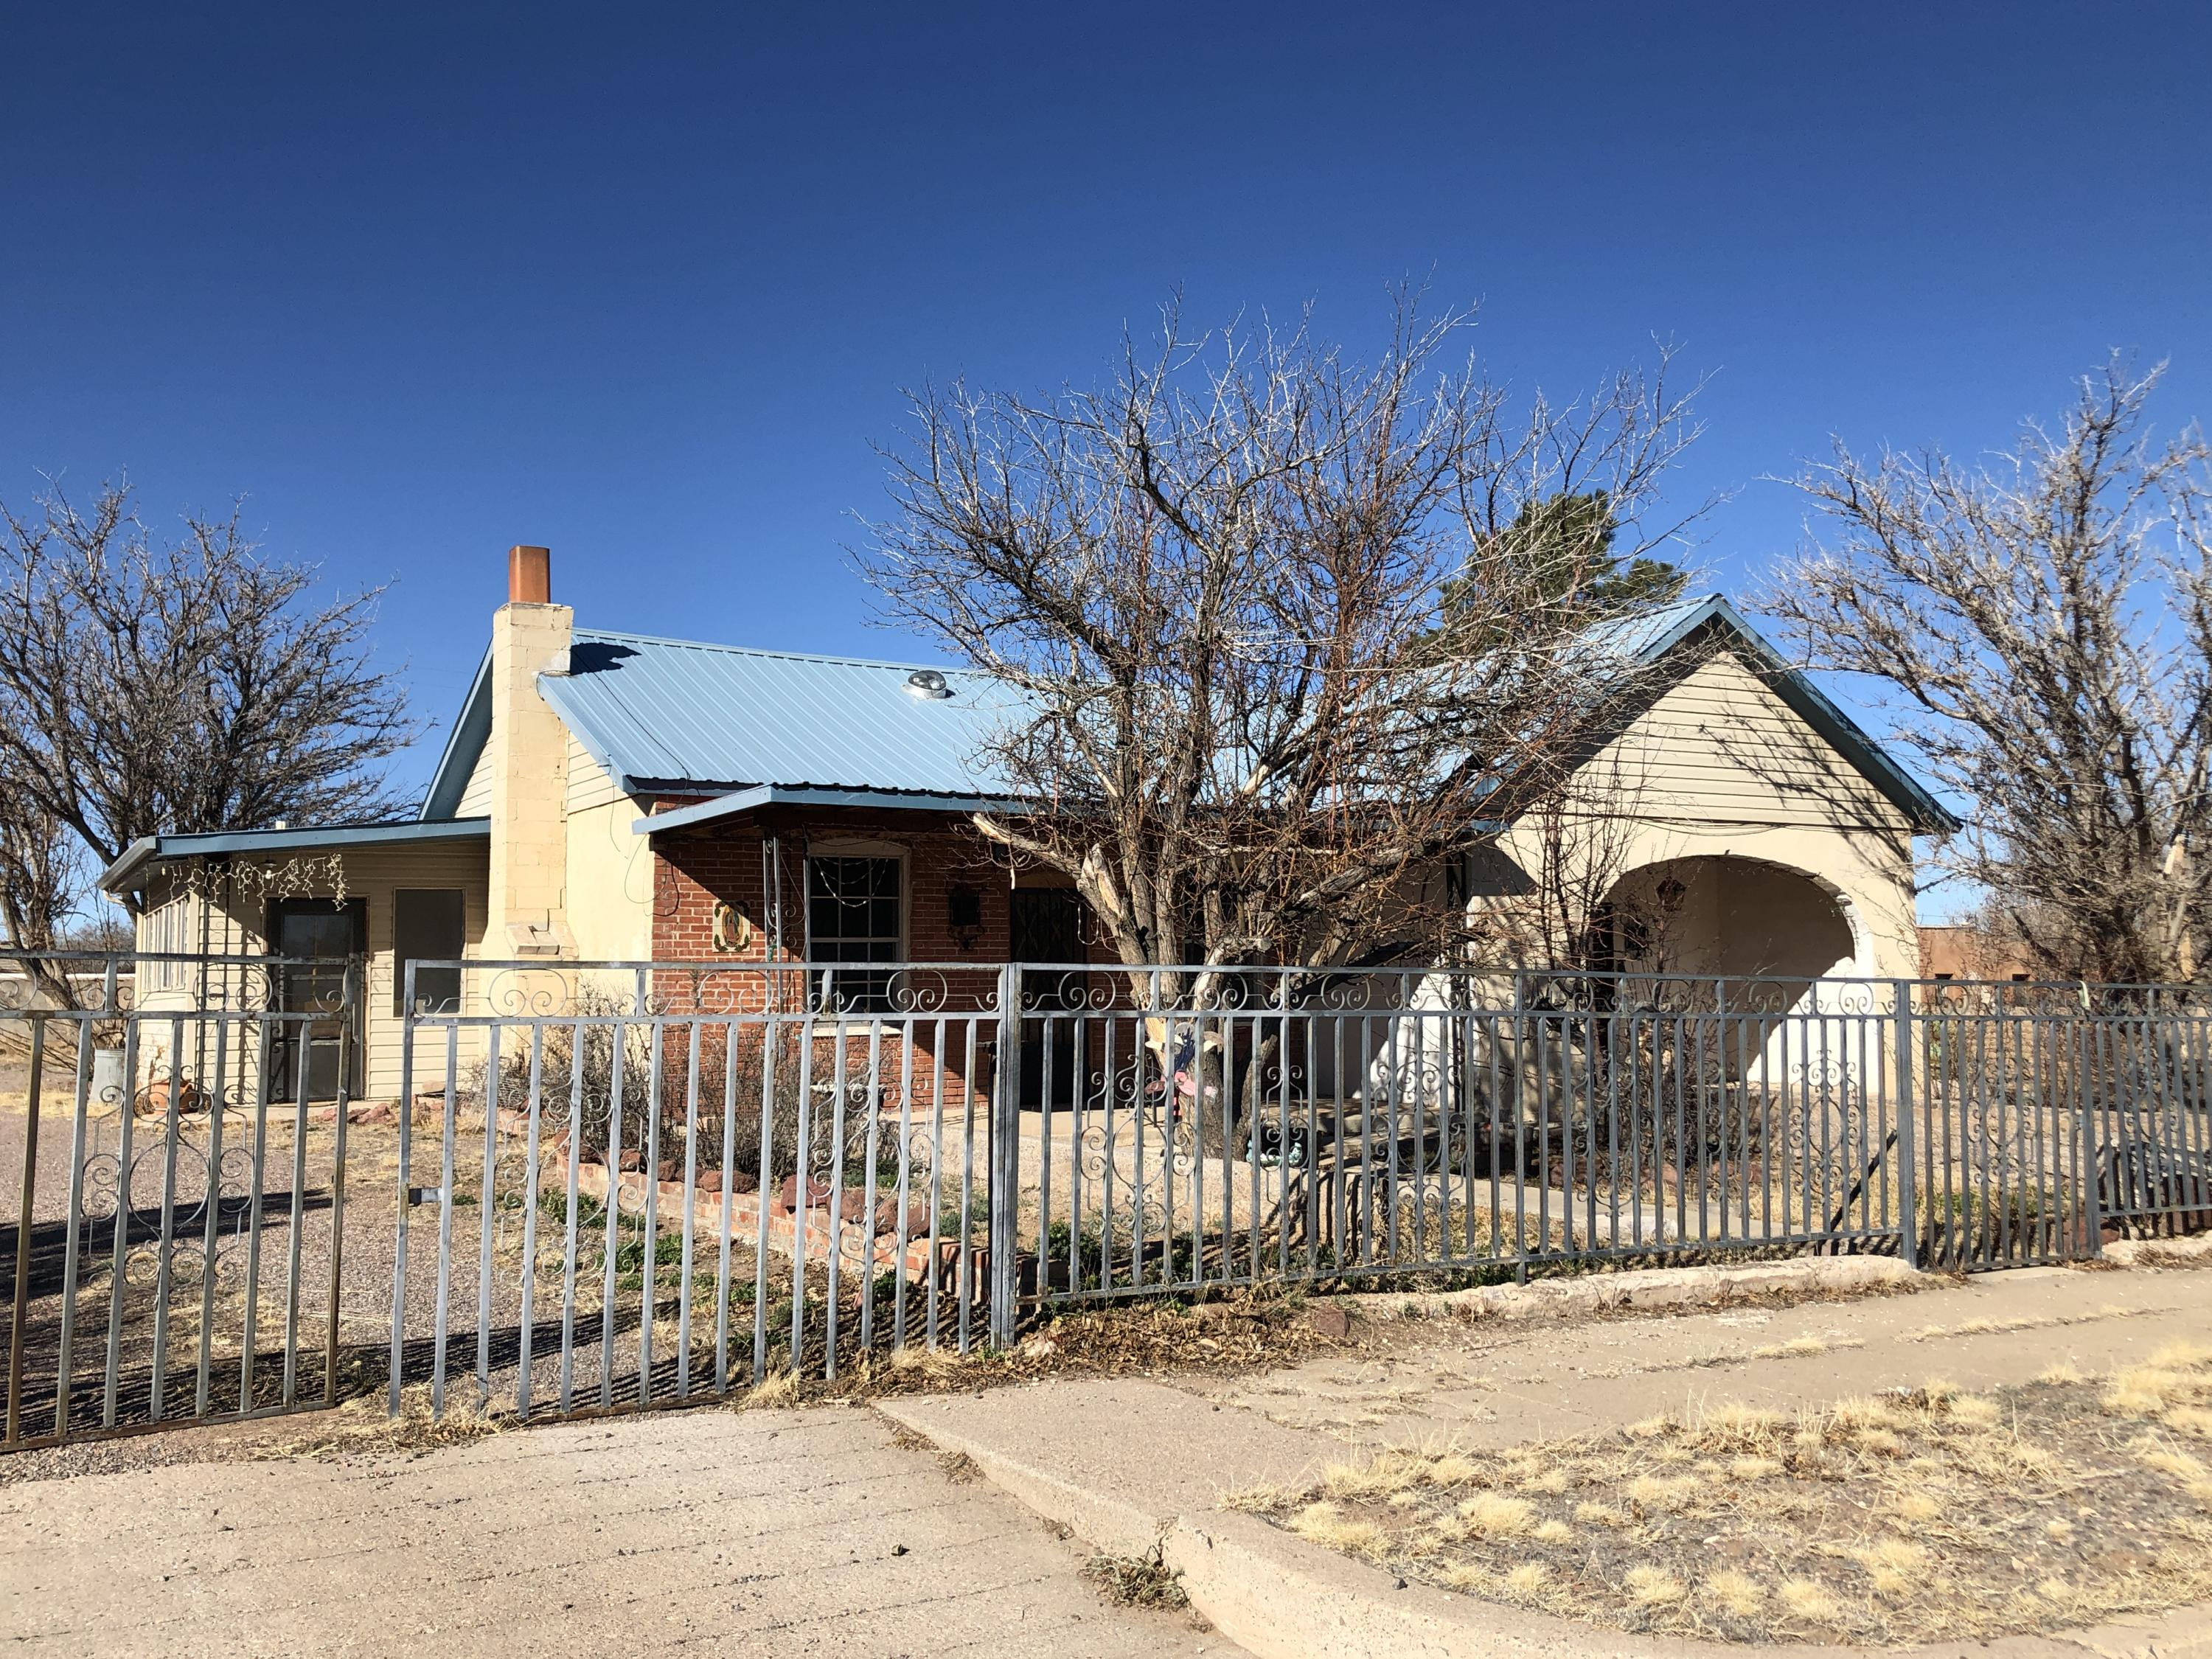 200 S Main Street, Magdalena, NM 87825 - Magdalena, NM real estate listing